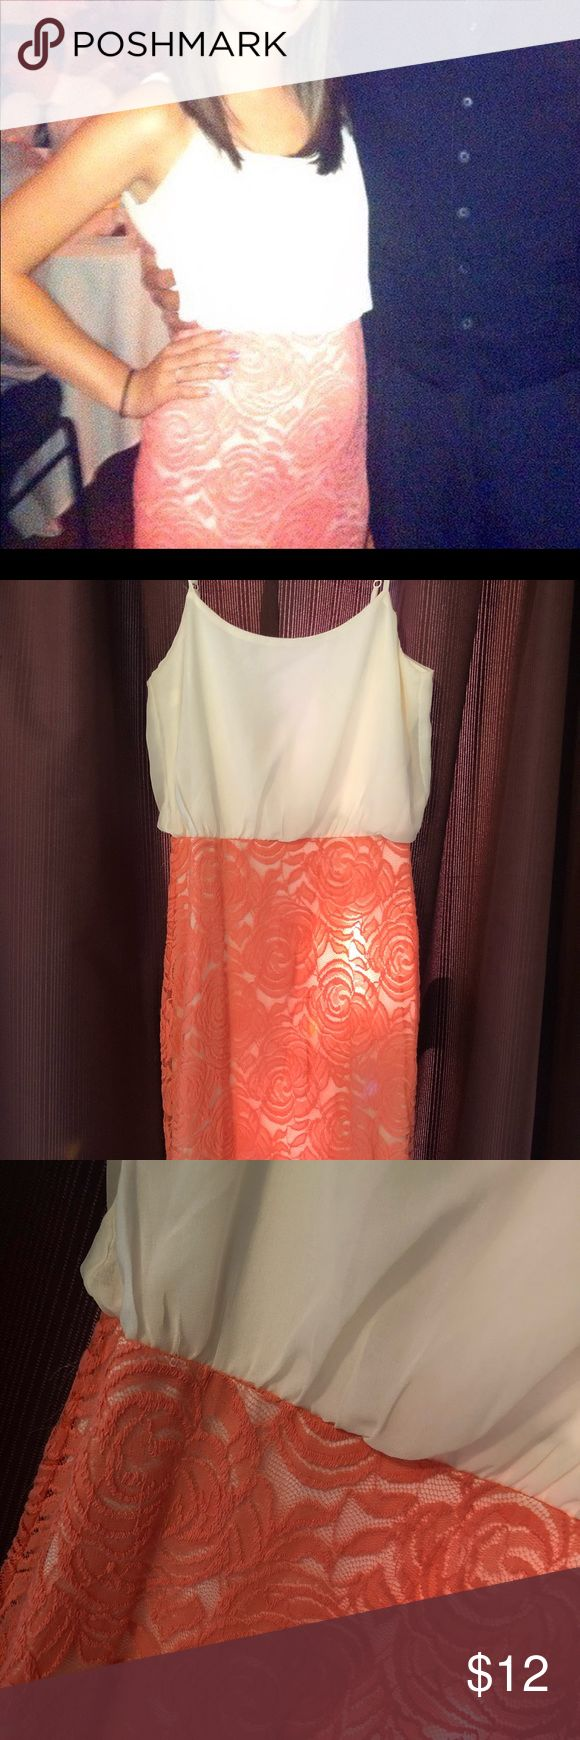 Lace and chiffon mini dress Dress is fully lined. Coral lace skirt with cream top. Adjustable straps and zip/tie back. Hits just above the knee. Zinga Dresses Mini